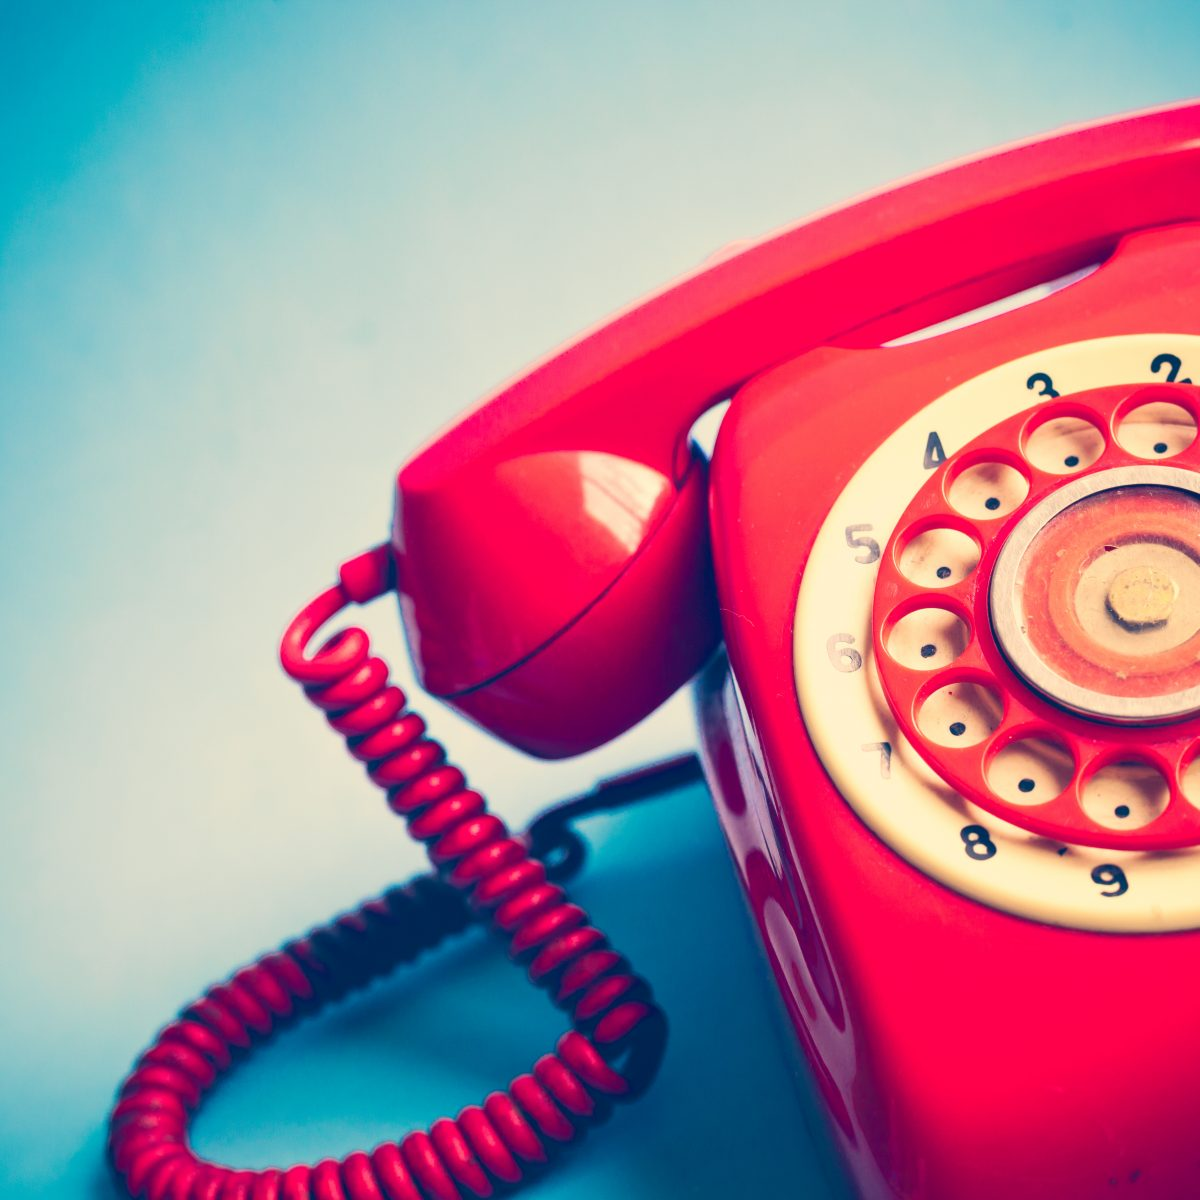 Porting A Phone Number To A New Provider An Introduction